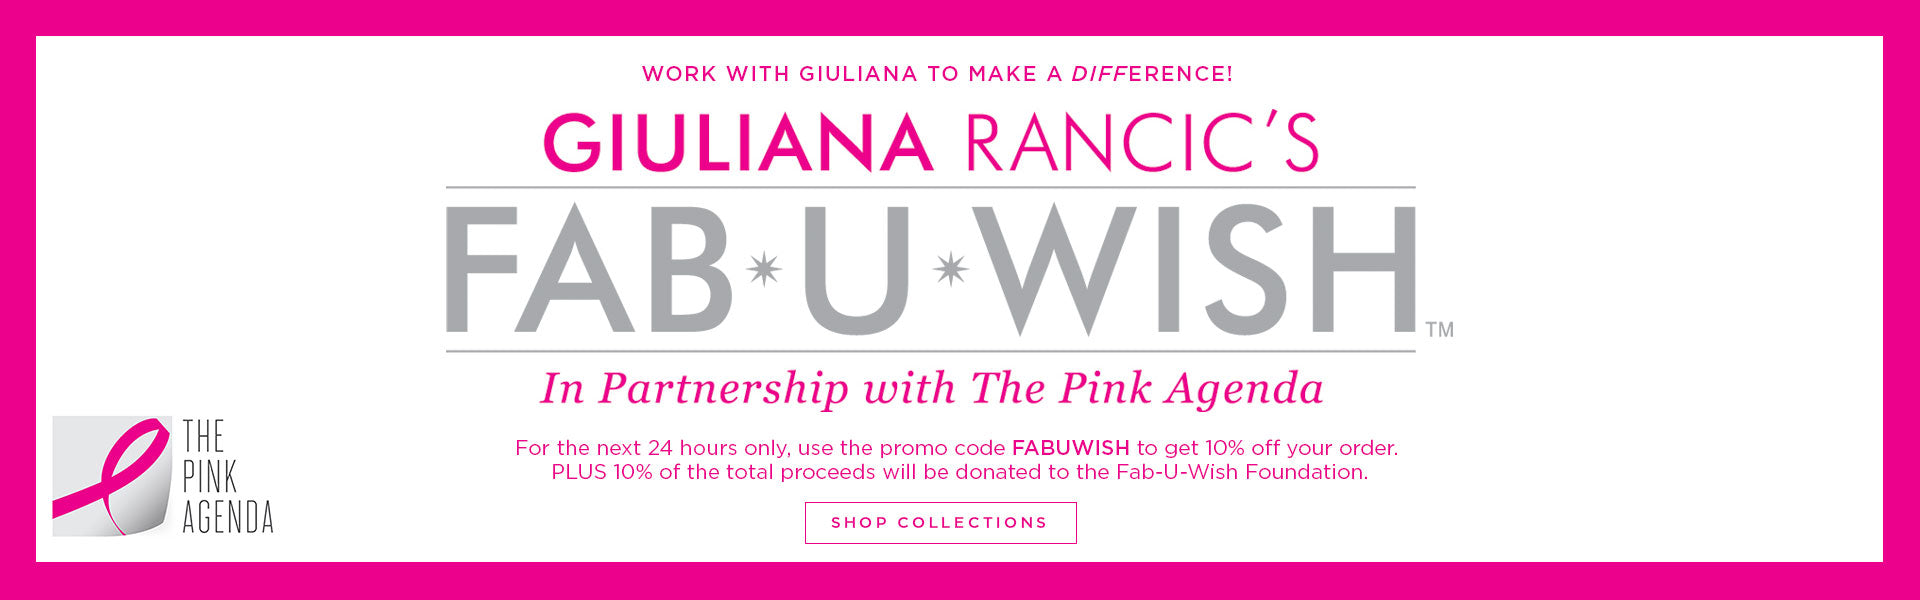 giuliana rancic diff eyewear collection banner fabuwish